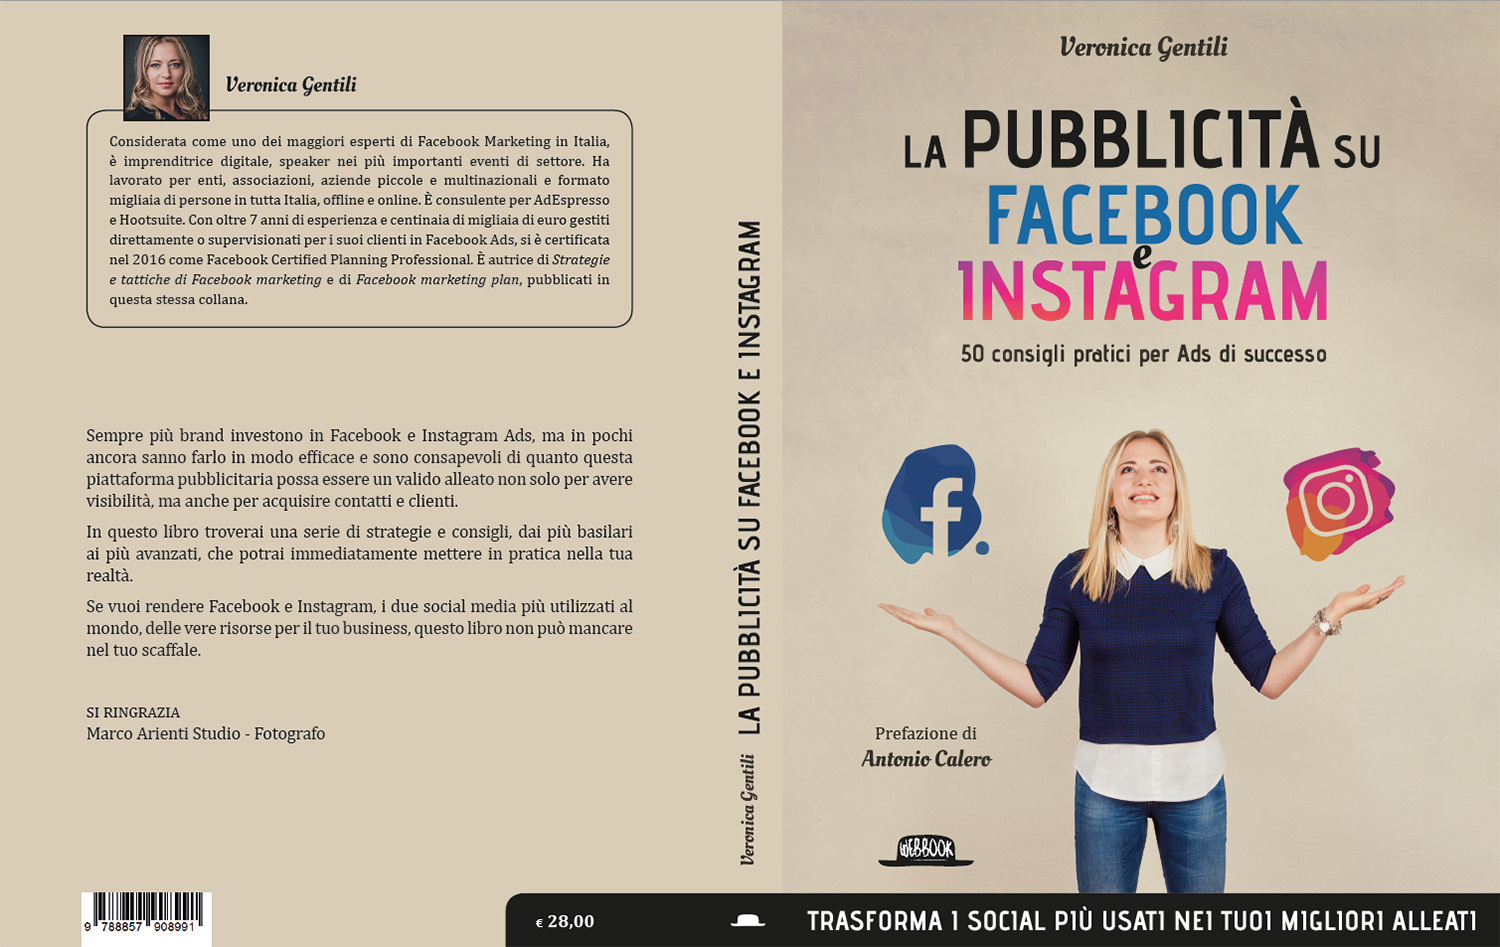 Veronica Gentili: La Pubblicità su Facebook e Instagram  Veronica Gentili:  www.veronicagentili.com   Facebook Marketing Plan:  amazon.it